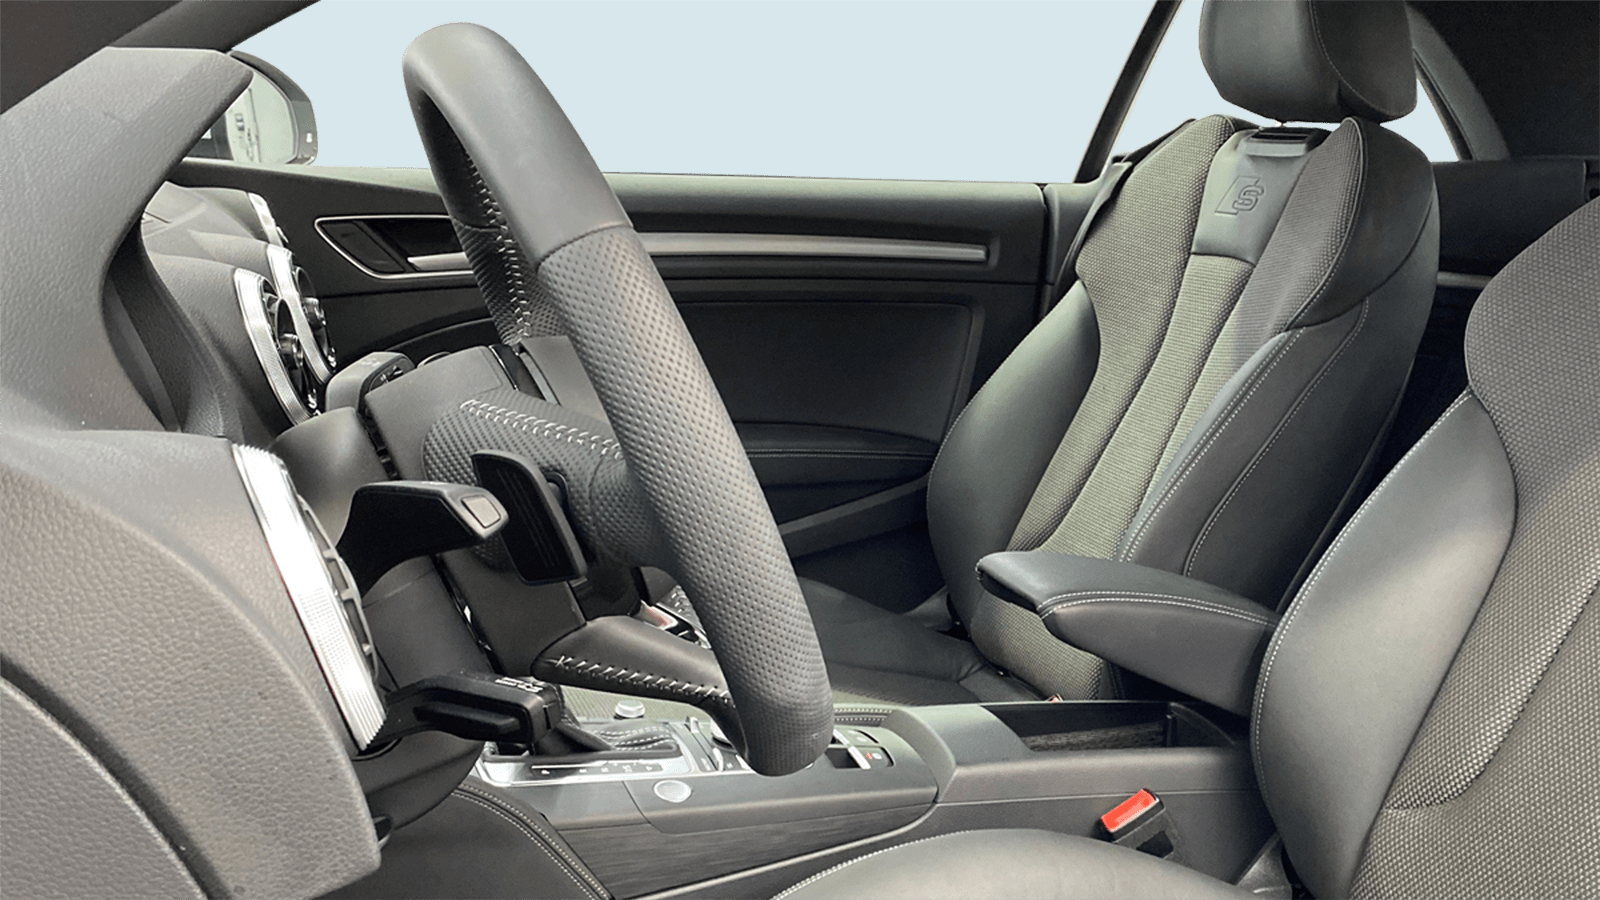 Audi A3 Cabriolet Weiss interior - Clyde Auto-Abo